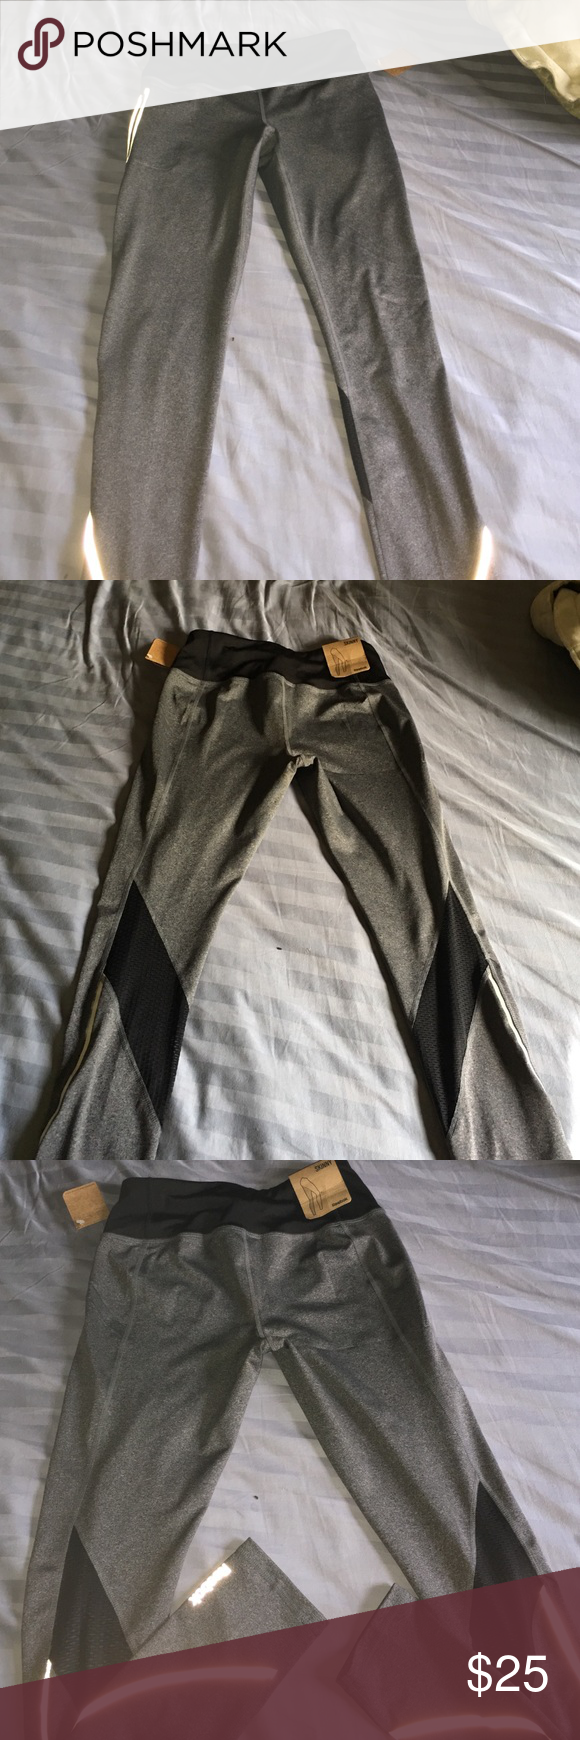 REEBOK LEGGINGS It's new size small Reebok Pants Leggings